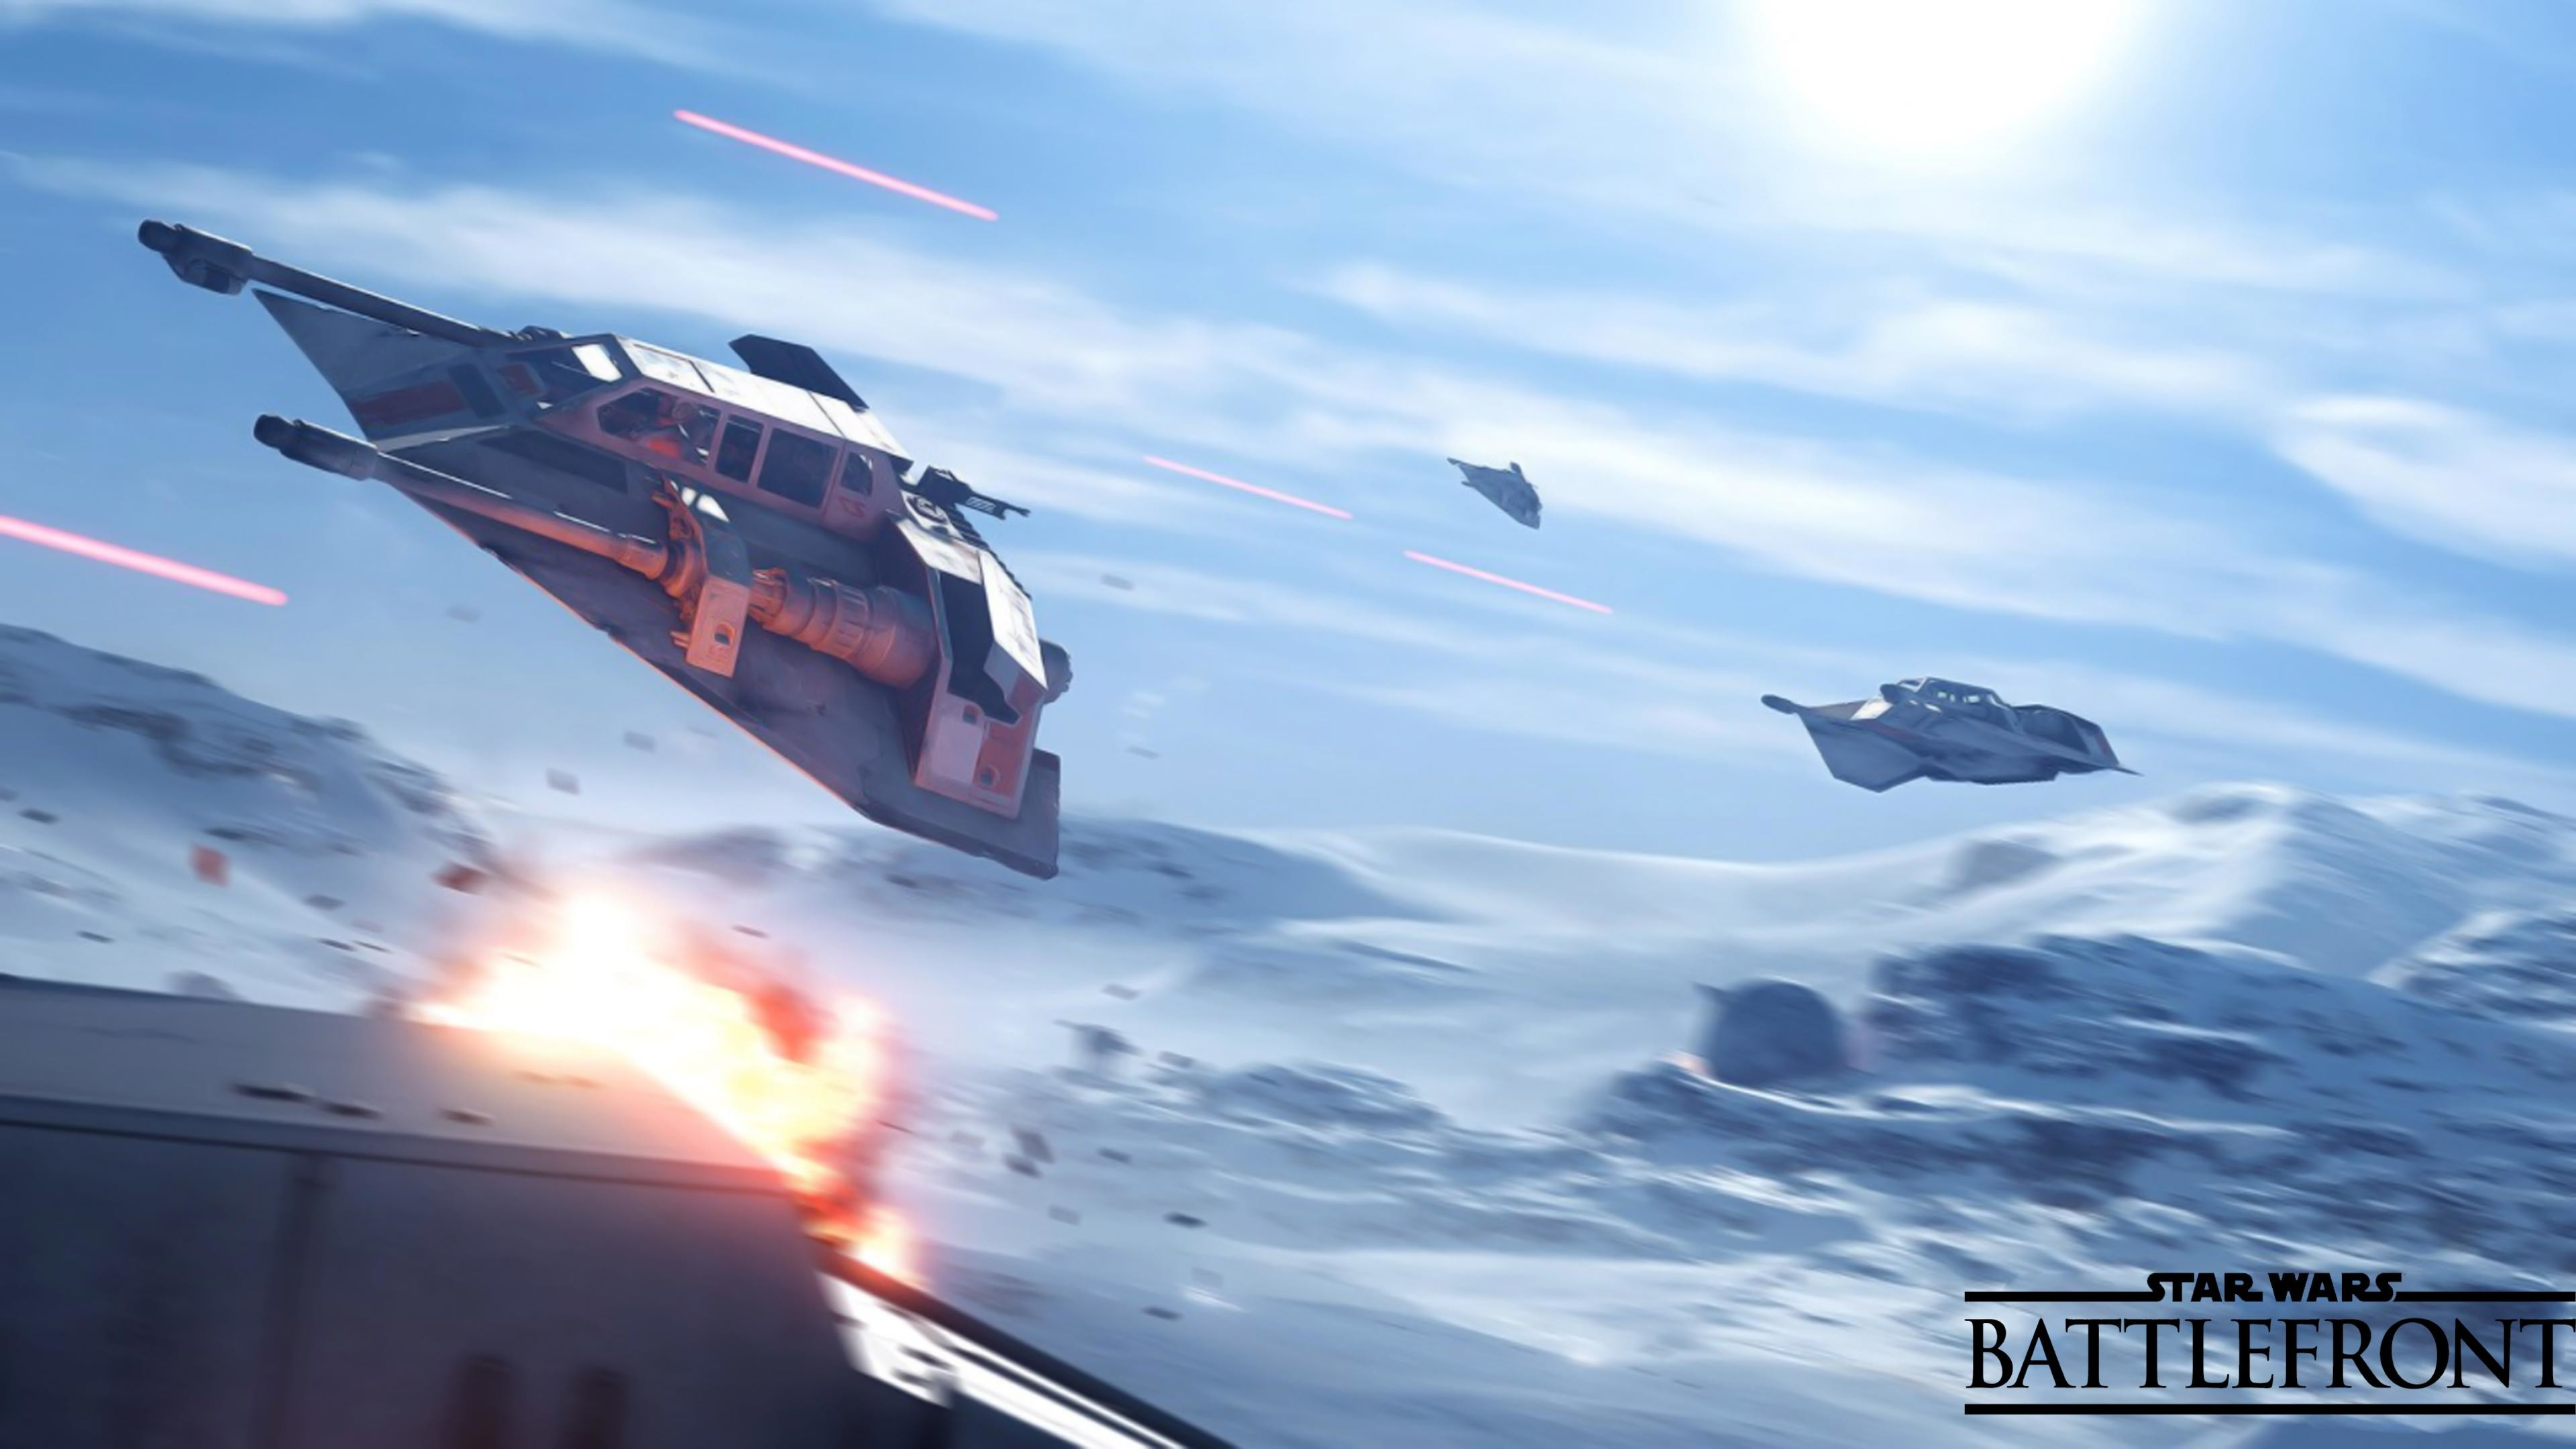 I made another 4K Star Wars Battlefront wallpaper for you guys!